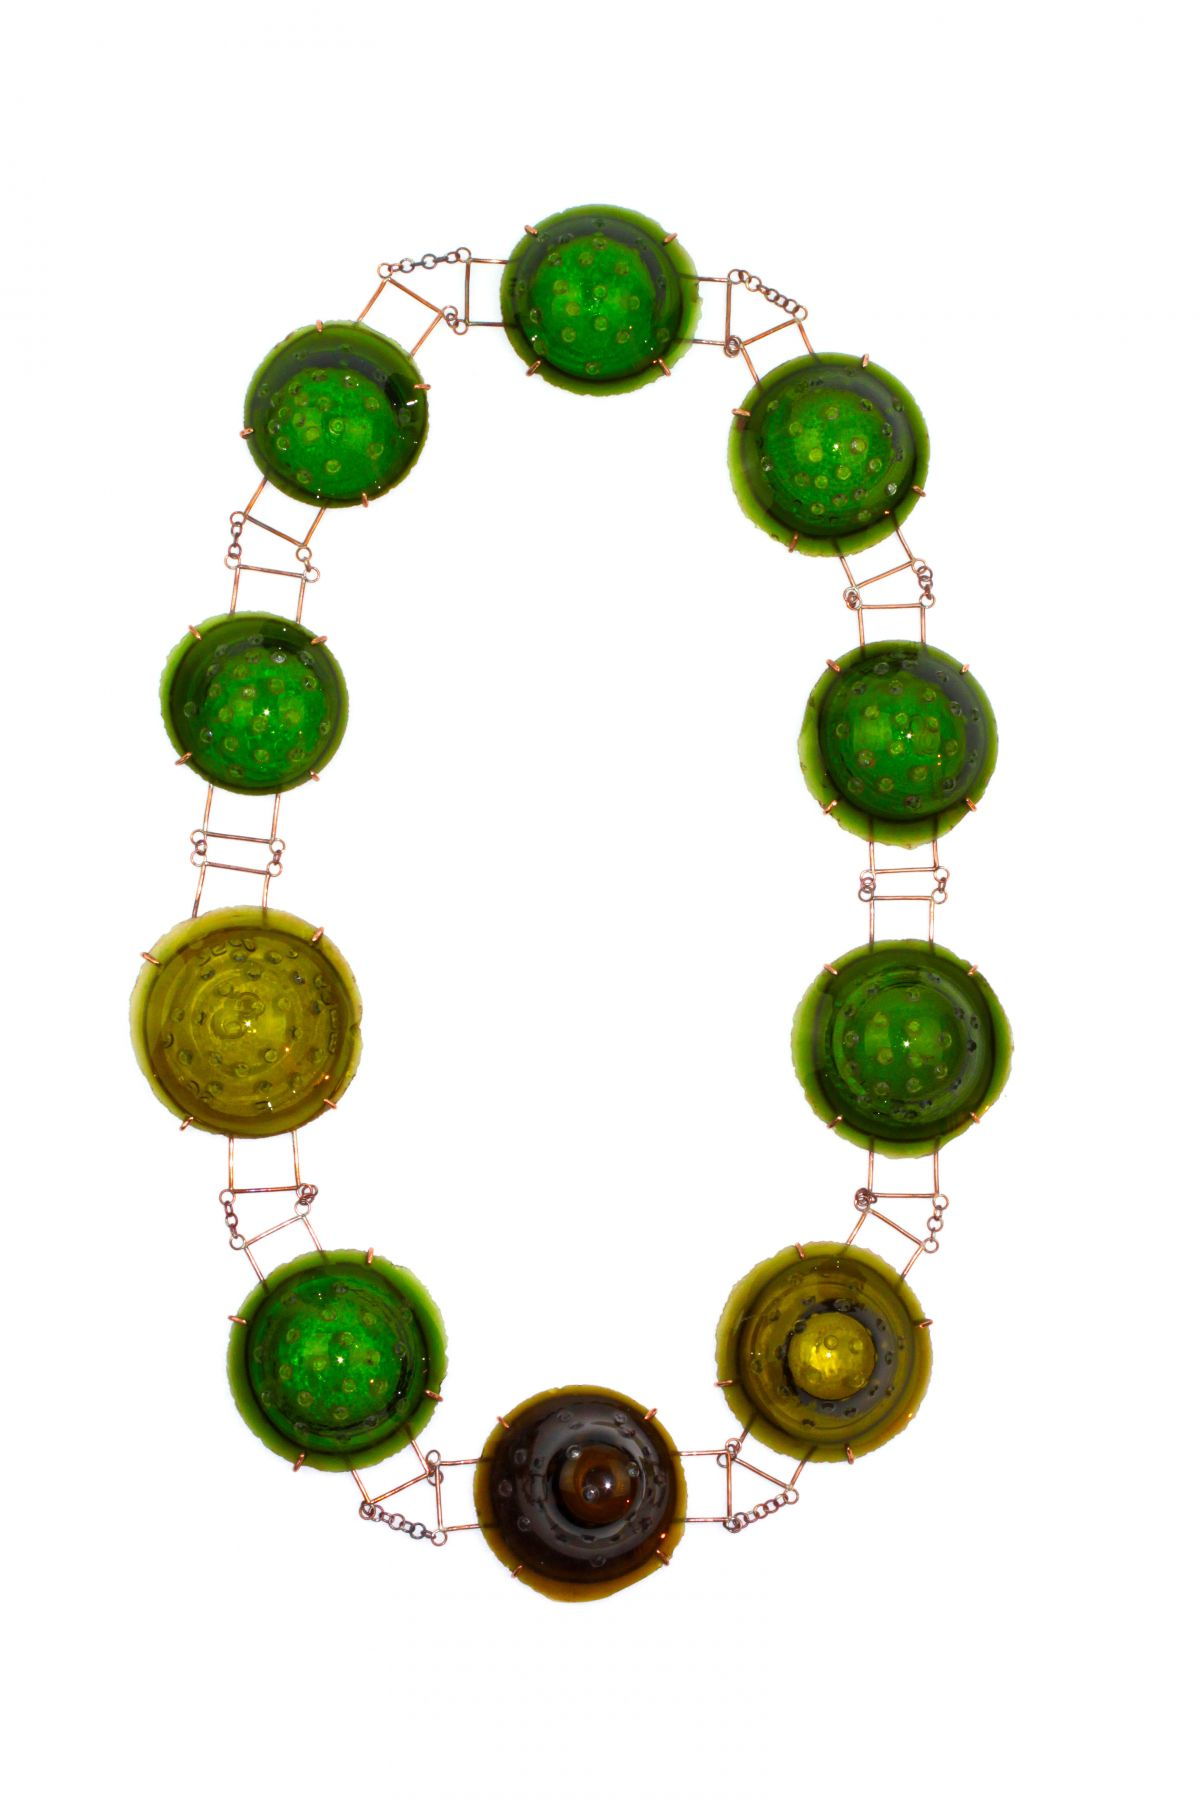 Philip Sajet, glass, contemporary jewelry, necklace